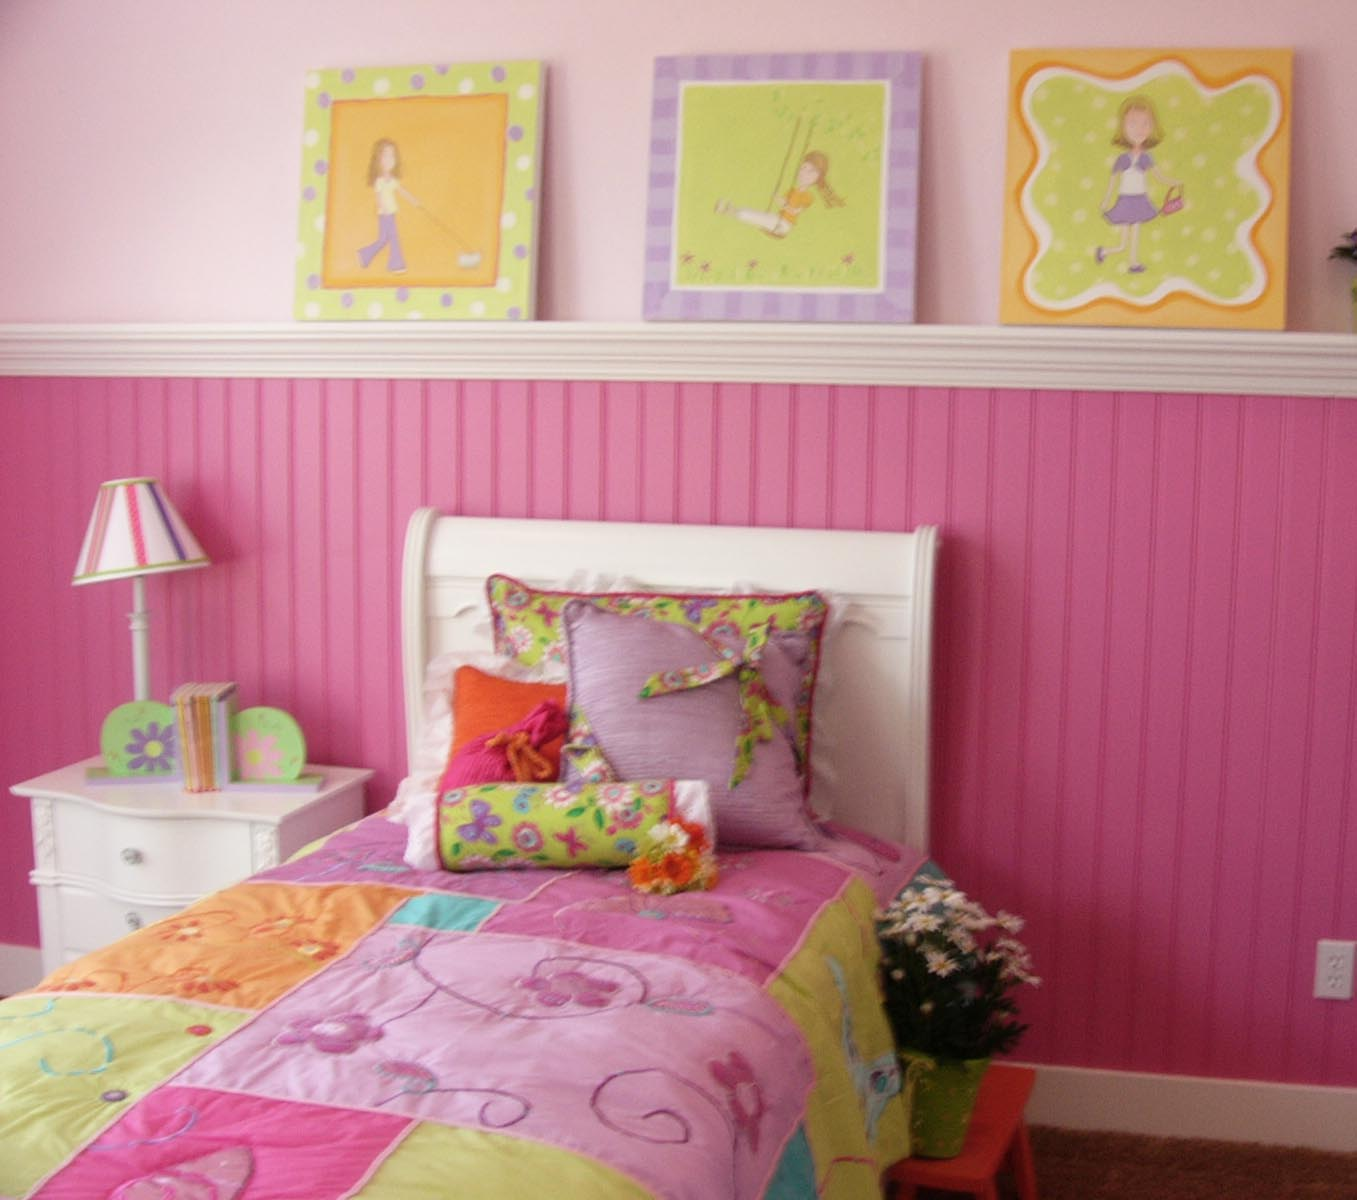 little girl room ideas pictures photo - 6